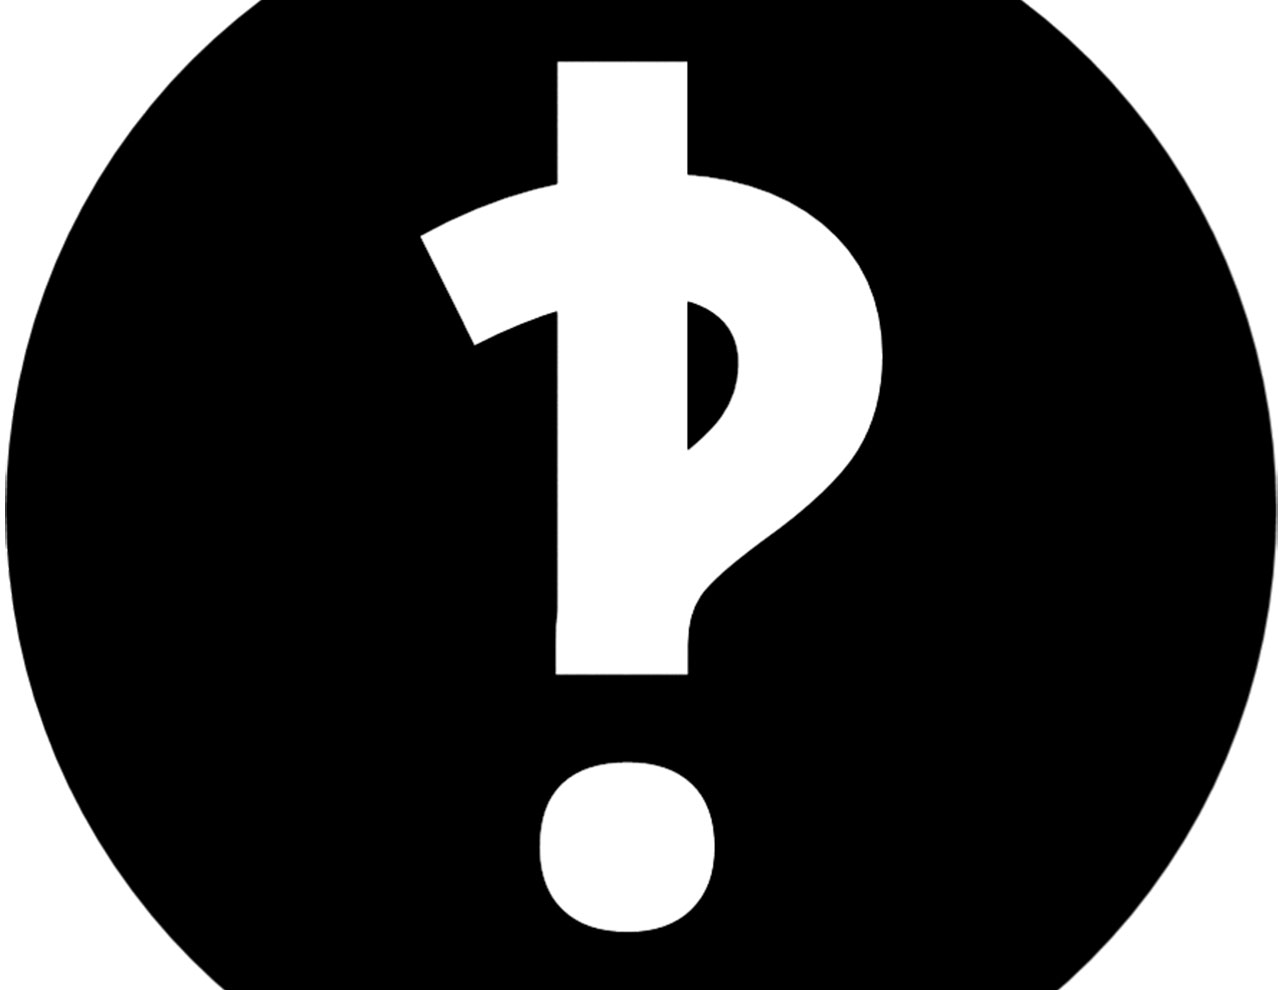 Interrobang – Point exclarrogatif